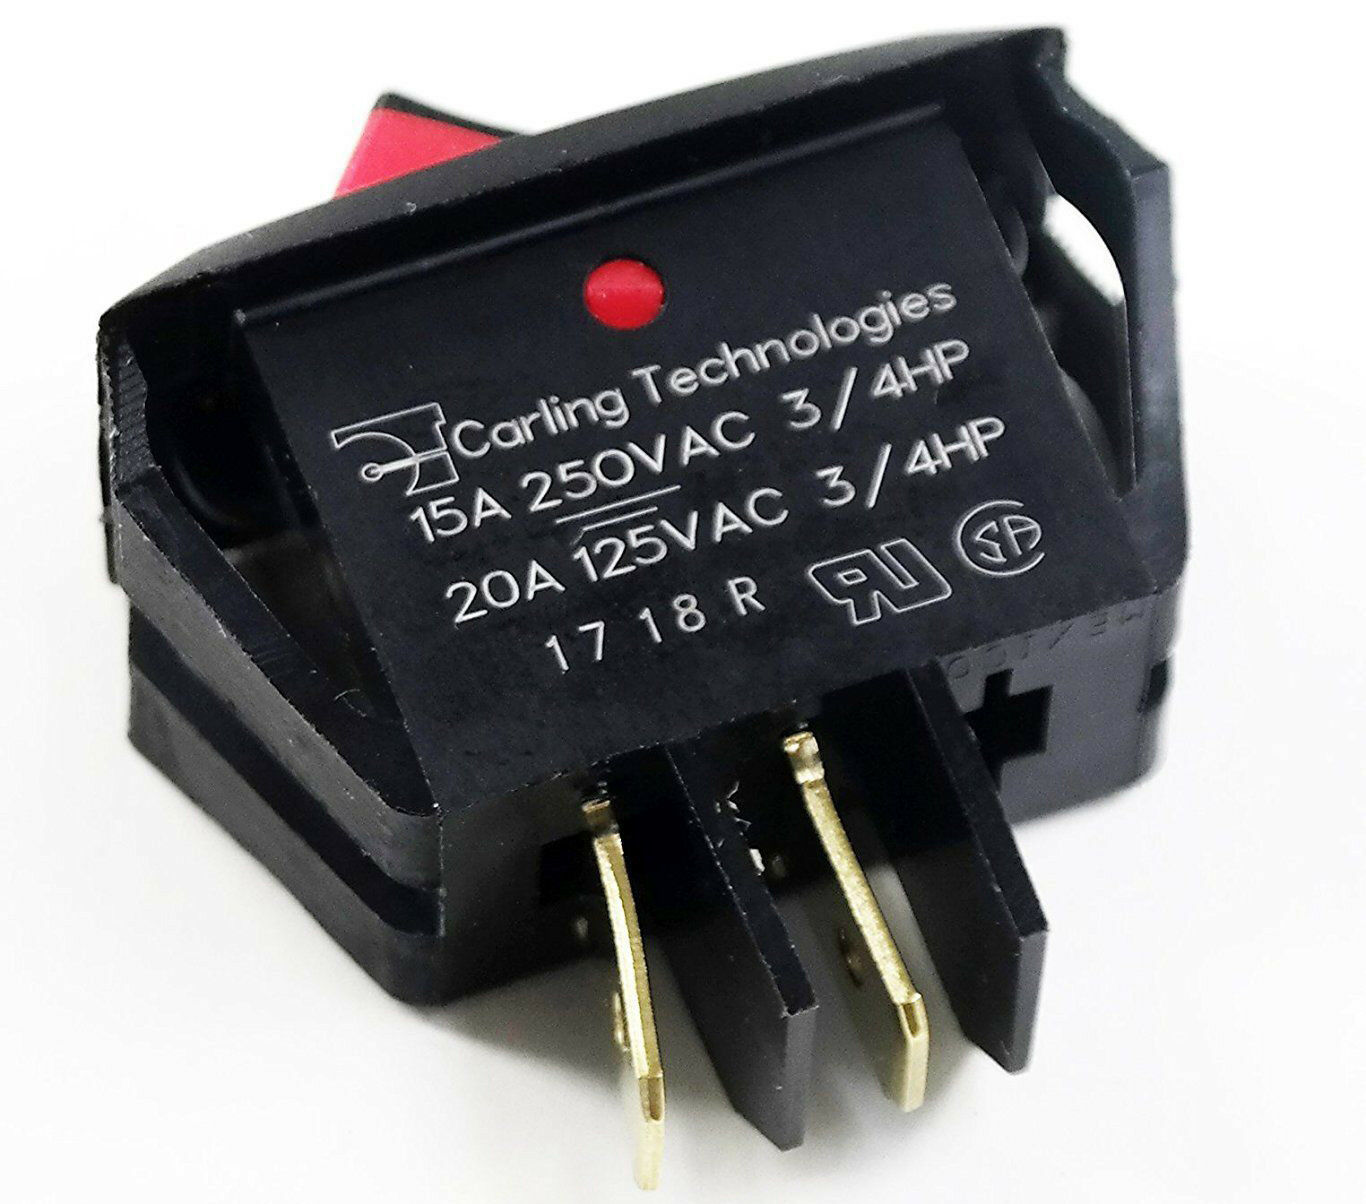 Carling Technologies Rsca201 Vb B 9 V Switch Rocker Spst 20a 125v Ebay Offon Switches Electrical Products Norton Secured Powered By Verisign